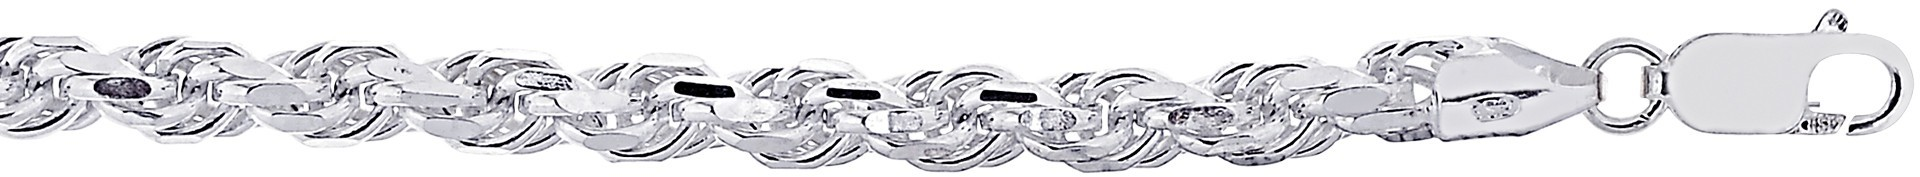 "24"" 5.7mm (2/9"") Textured Diamond Cut 925 Sterling Silver Rope Chain w/ Lobster Clasp"